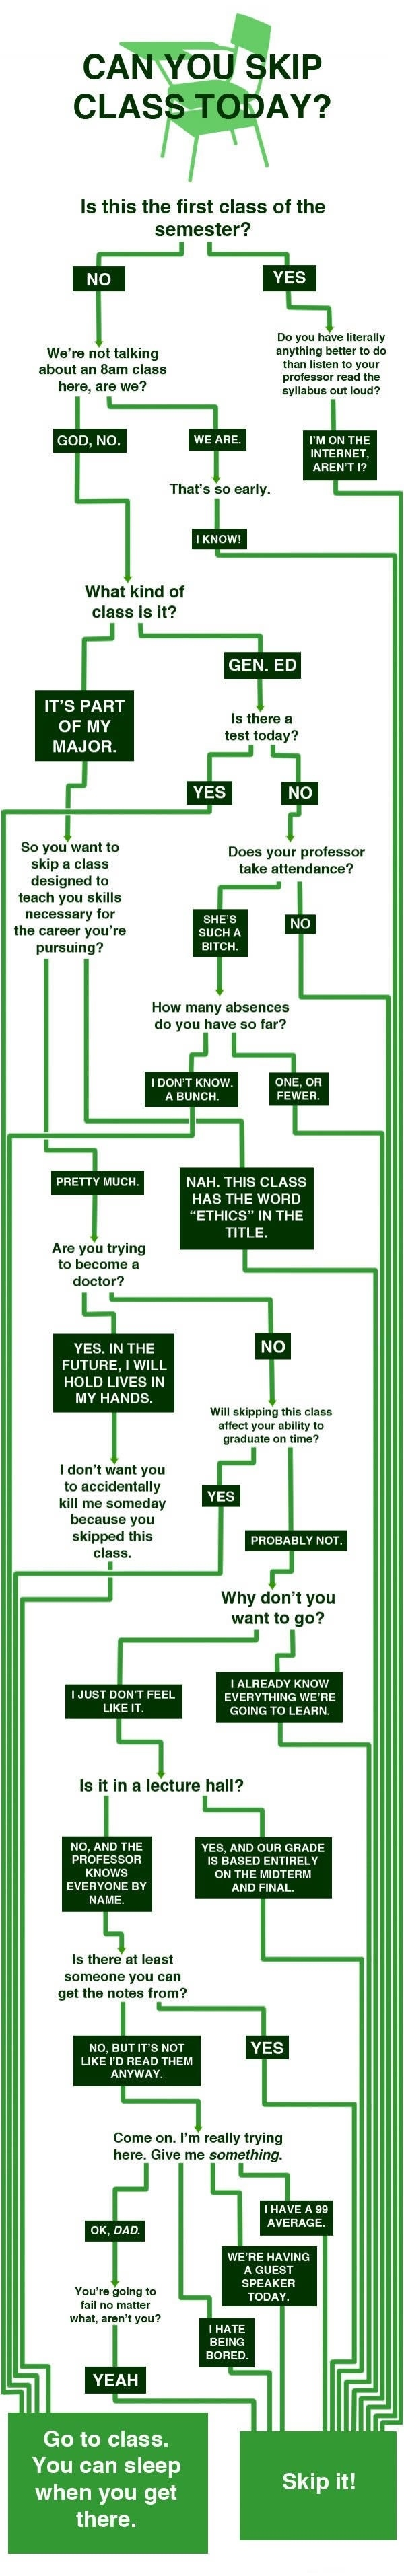 Can you skip your class?